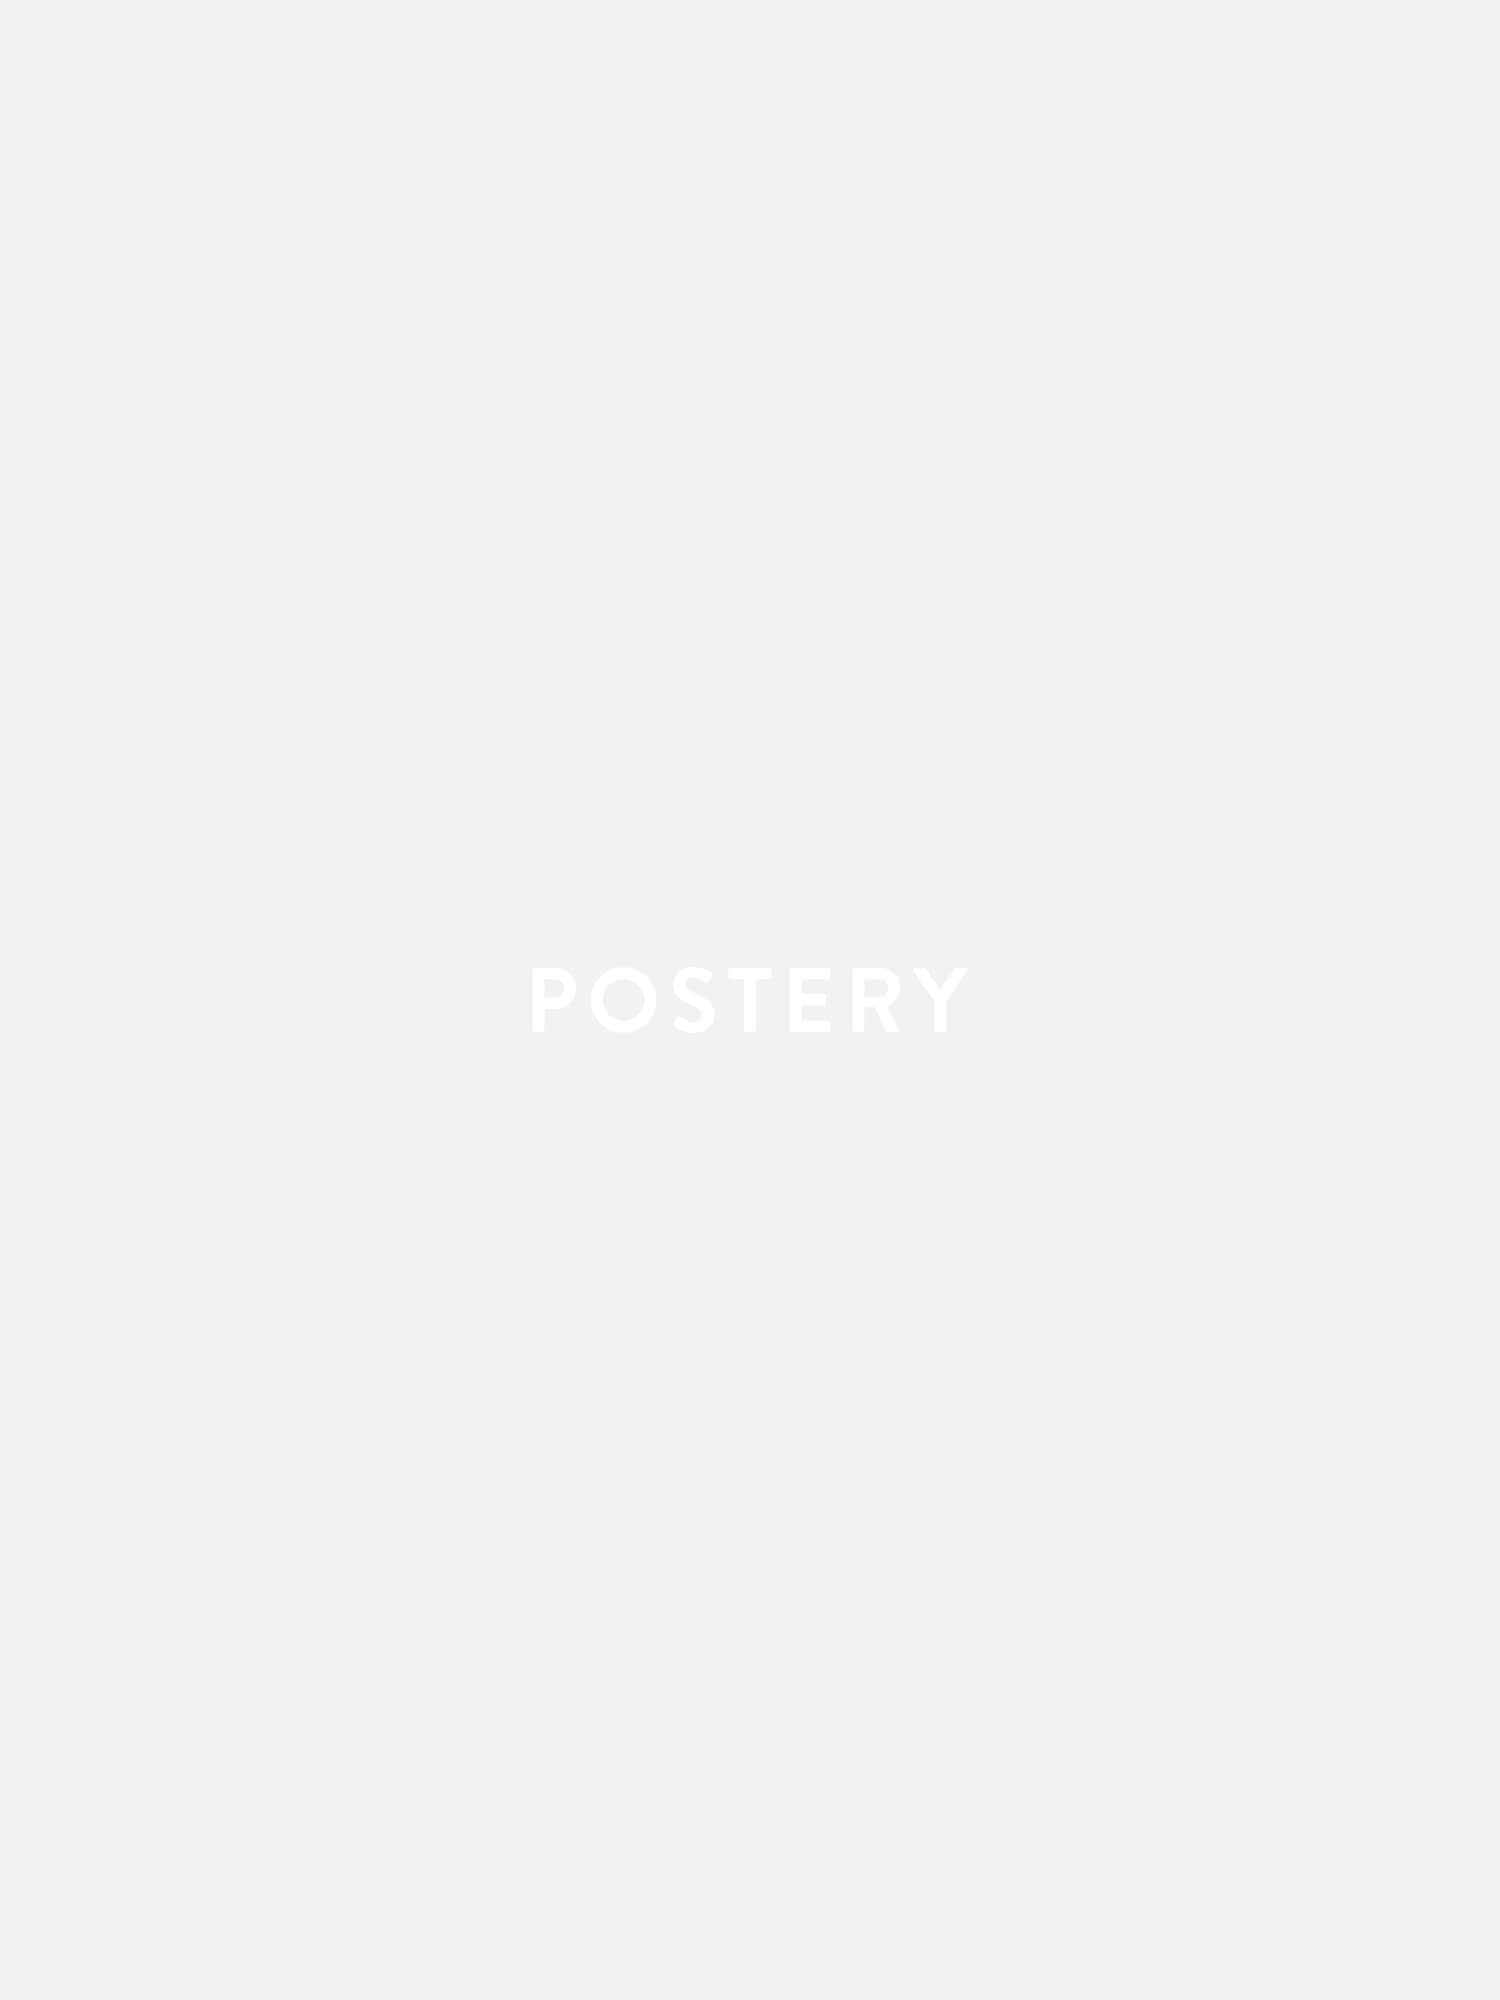 Beer Pong Rules Poster